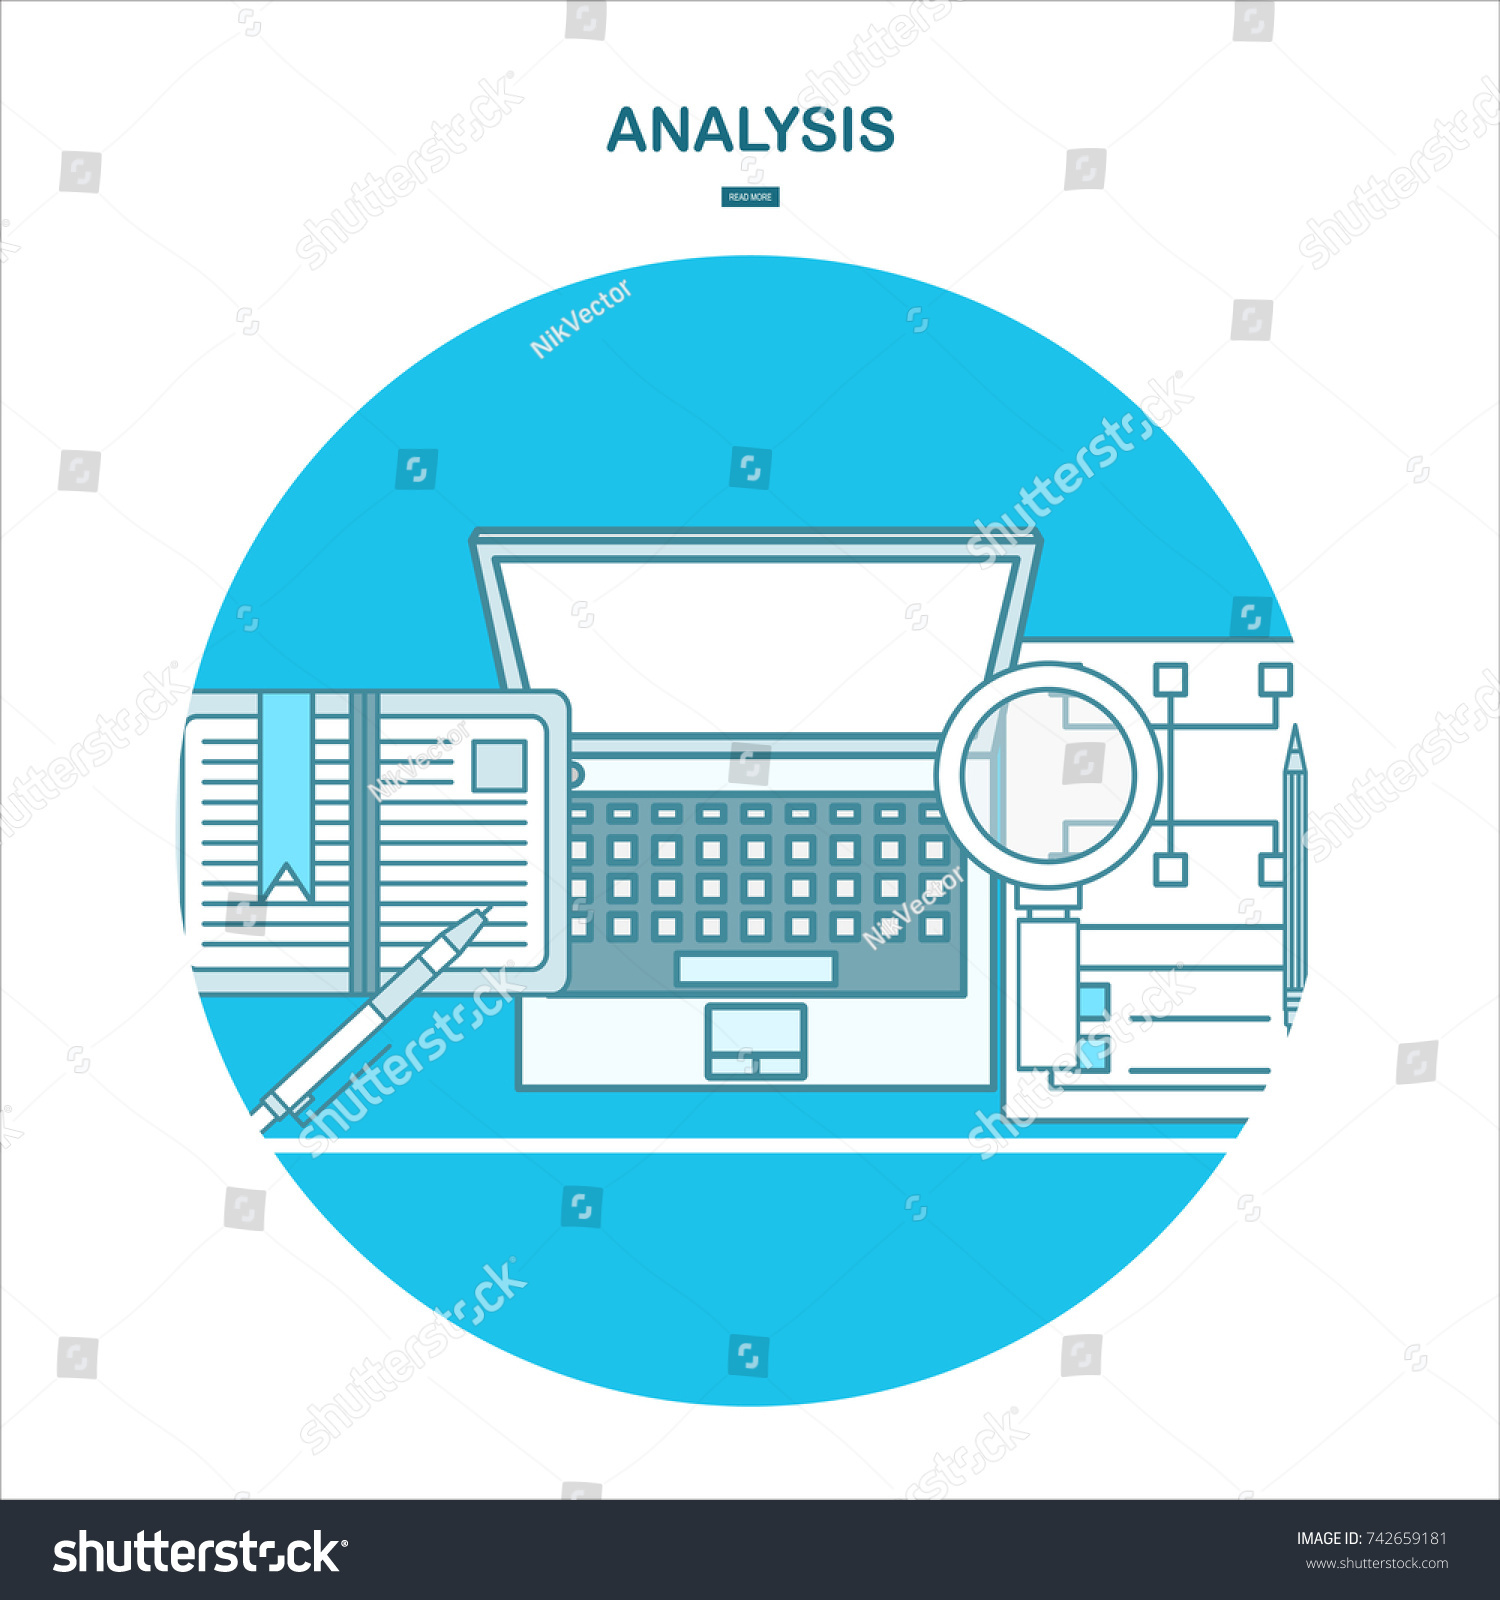 Illustration Concept For Business Analysis, Market Research, Data Analysis.line  Design Template For